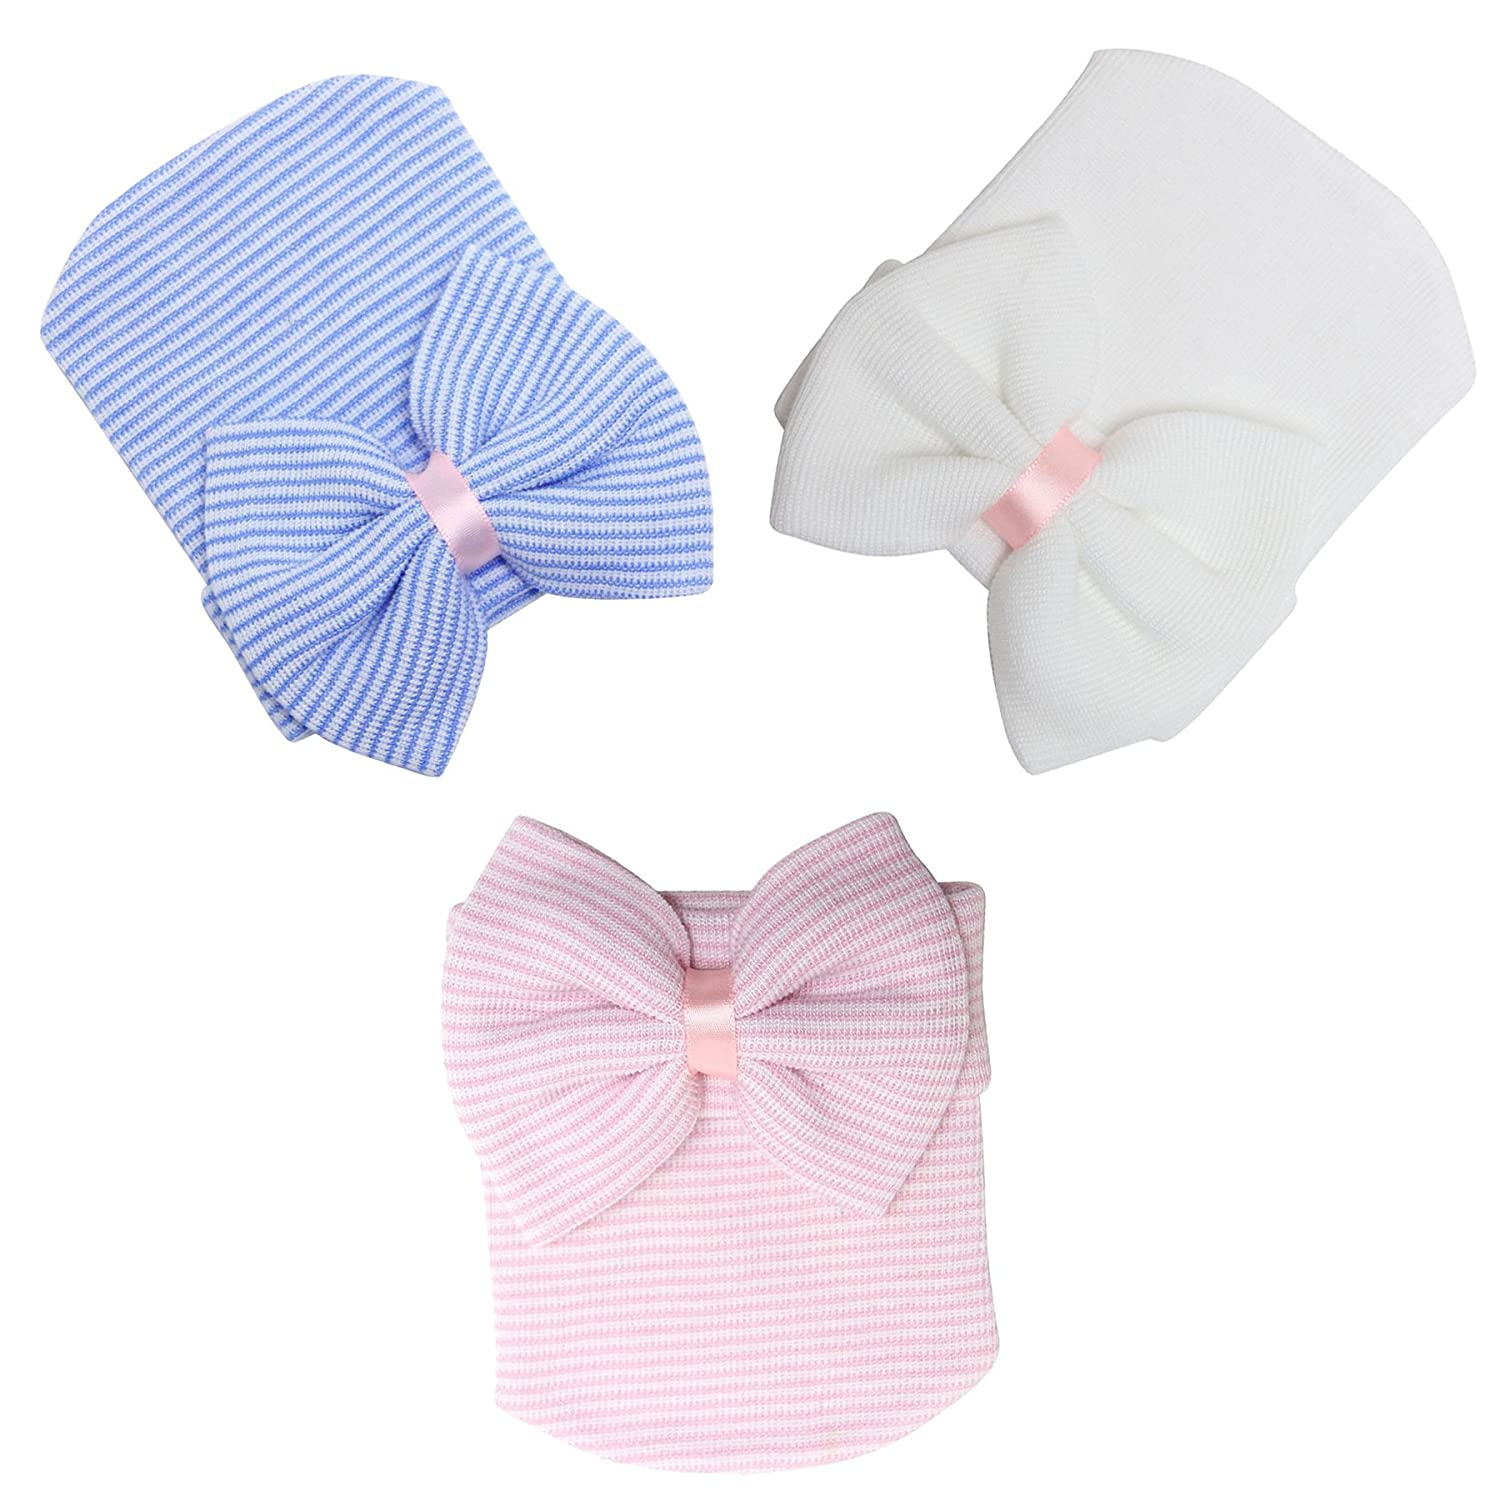 TRADERPLUS 3 Pieces Newborn Baby Hat Cap with Big Bow Nursery Beanie Gift